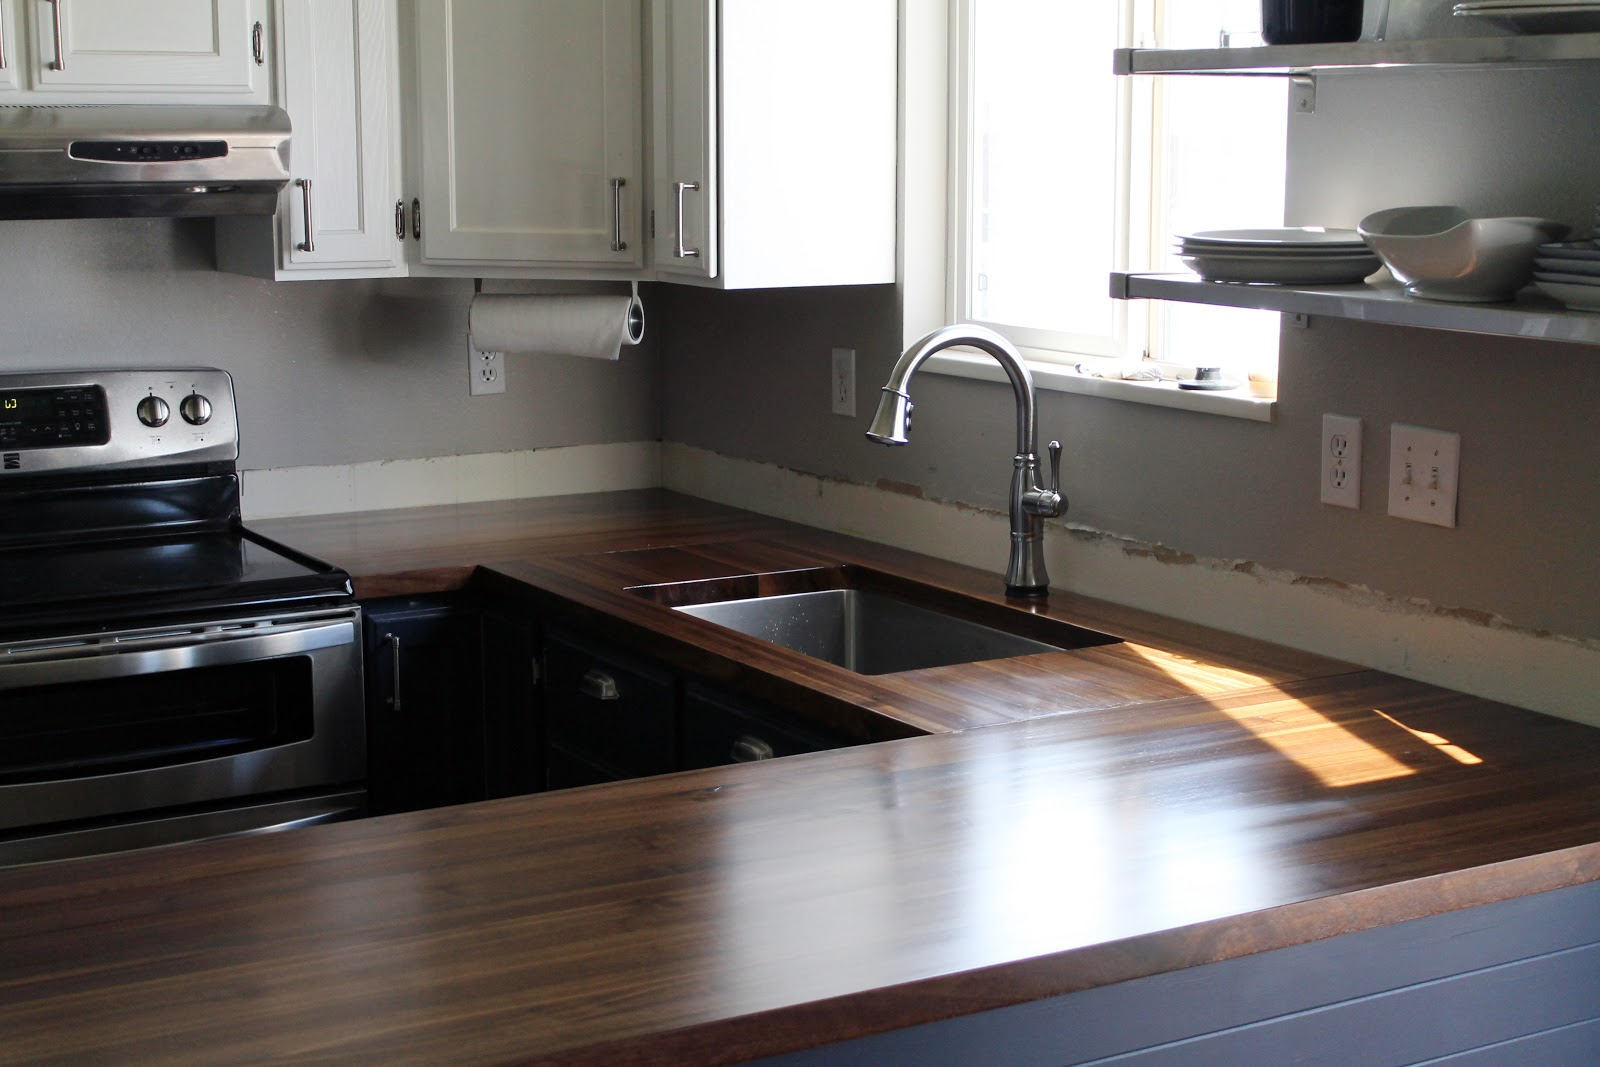 Wooden island countertop and bleach for Bleaching kitchen cabinets